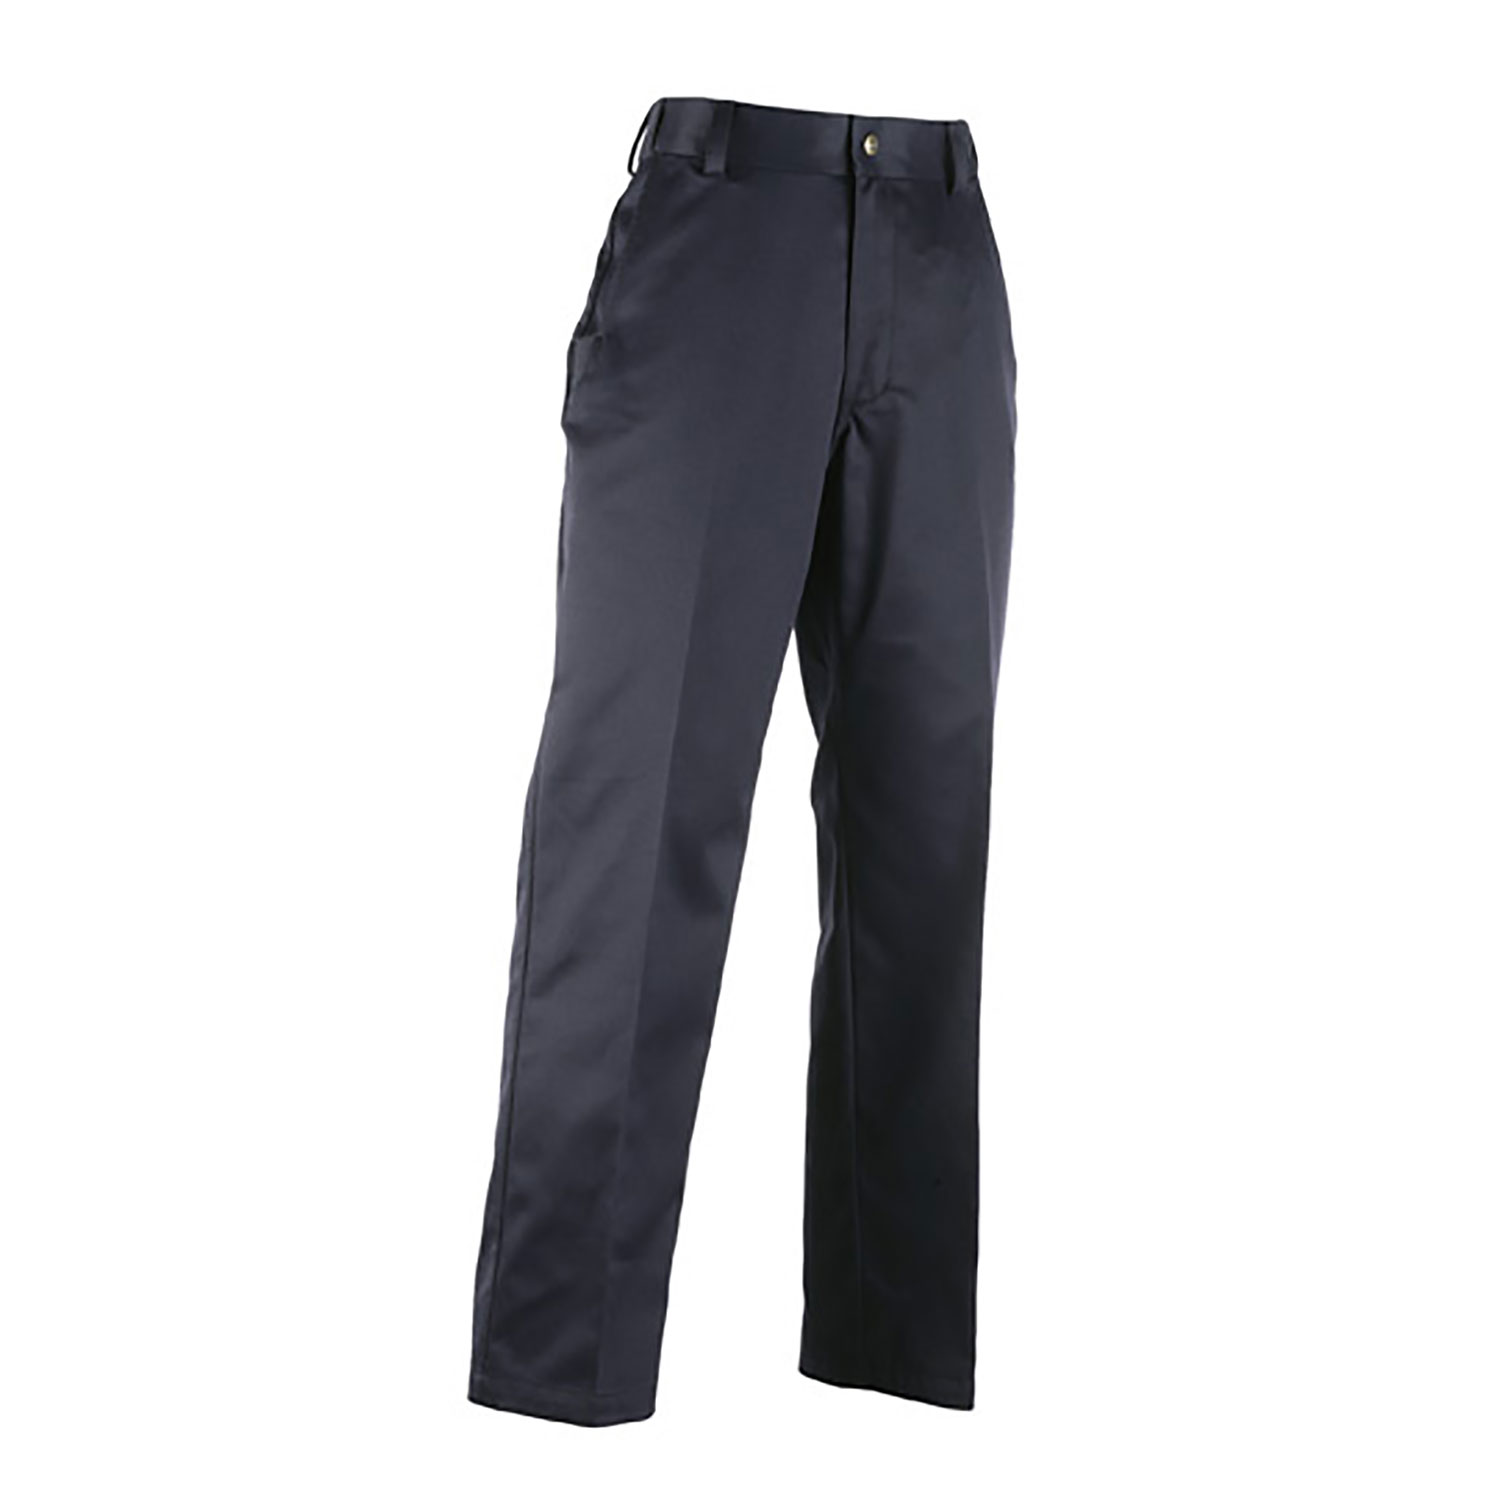 5.11 Tactical Firefighter Stationwear Pants